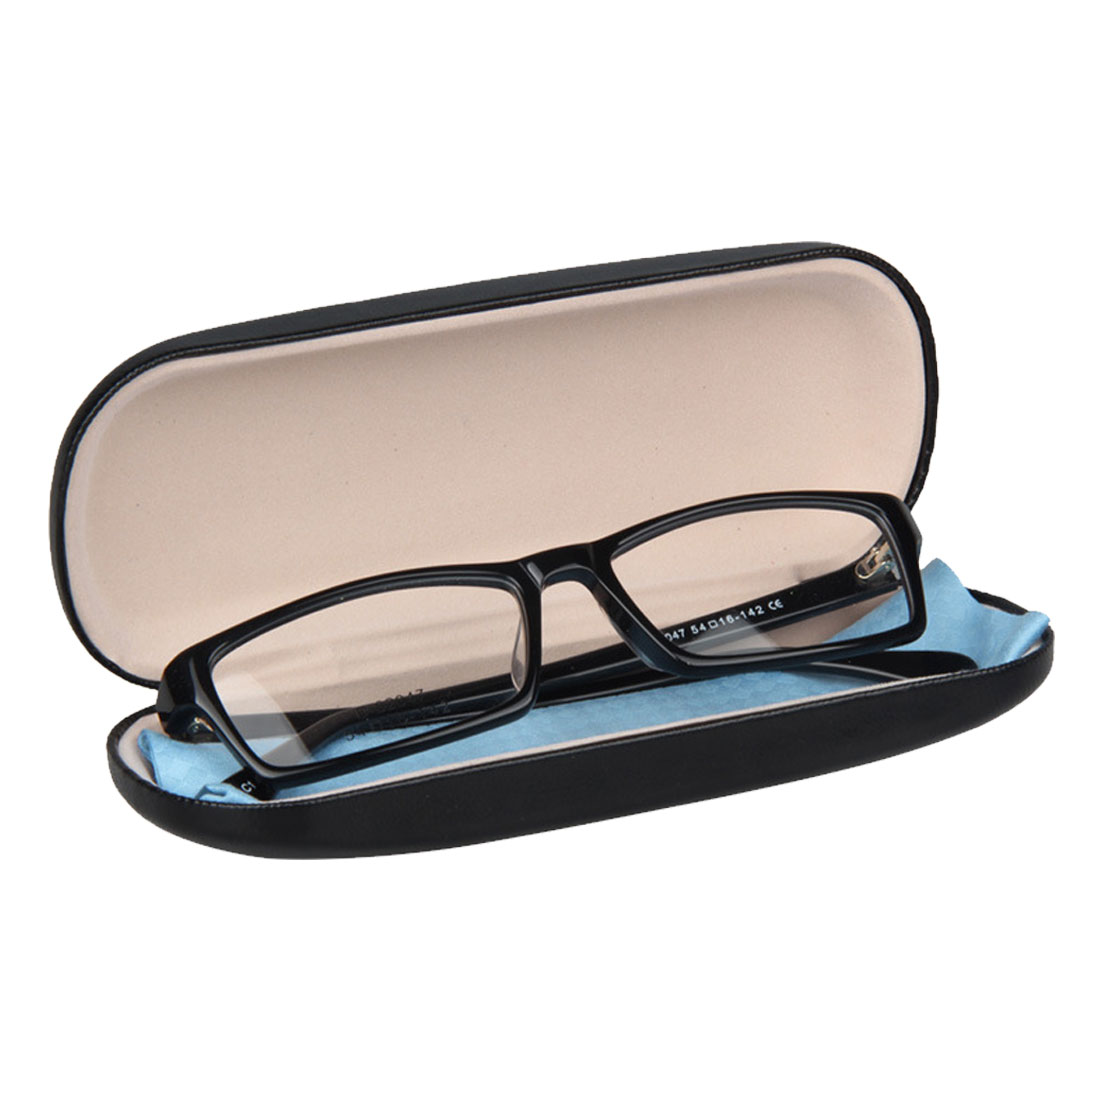 Eyeglasses Hard Spectacle Box Cases Pouch Portable Glasses Case Waterproof Fashion Sunglasses Cover Box classic glasses Case in Eyewear Accessories from Apparel Accessories